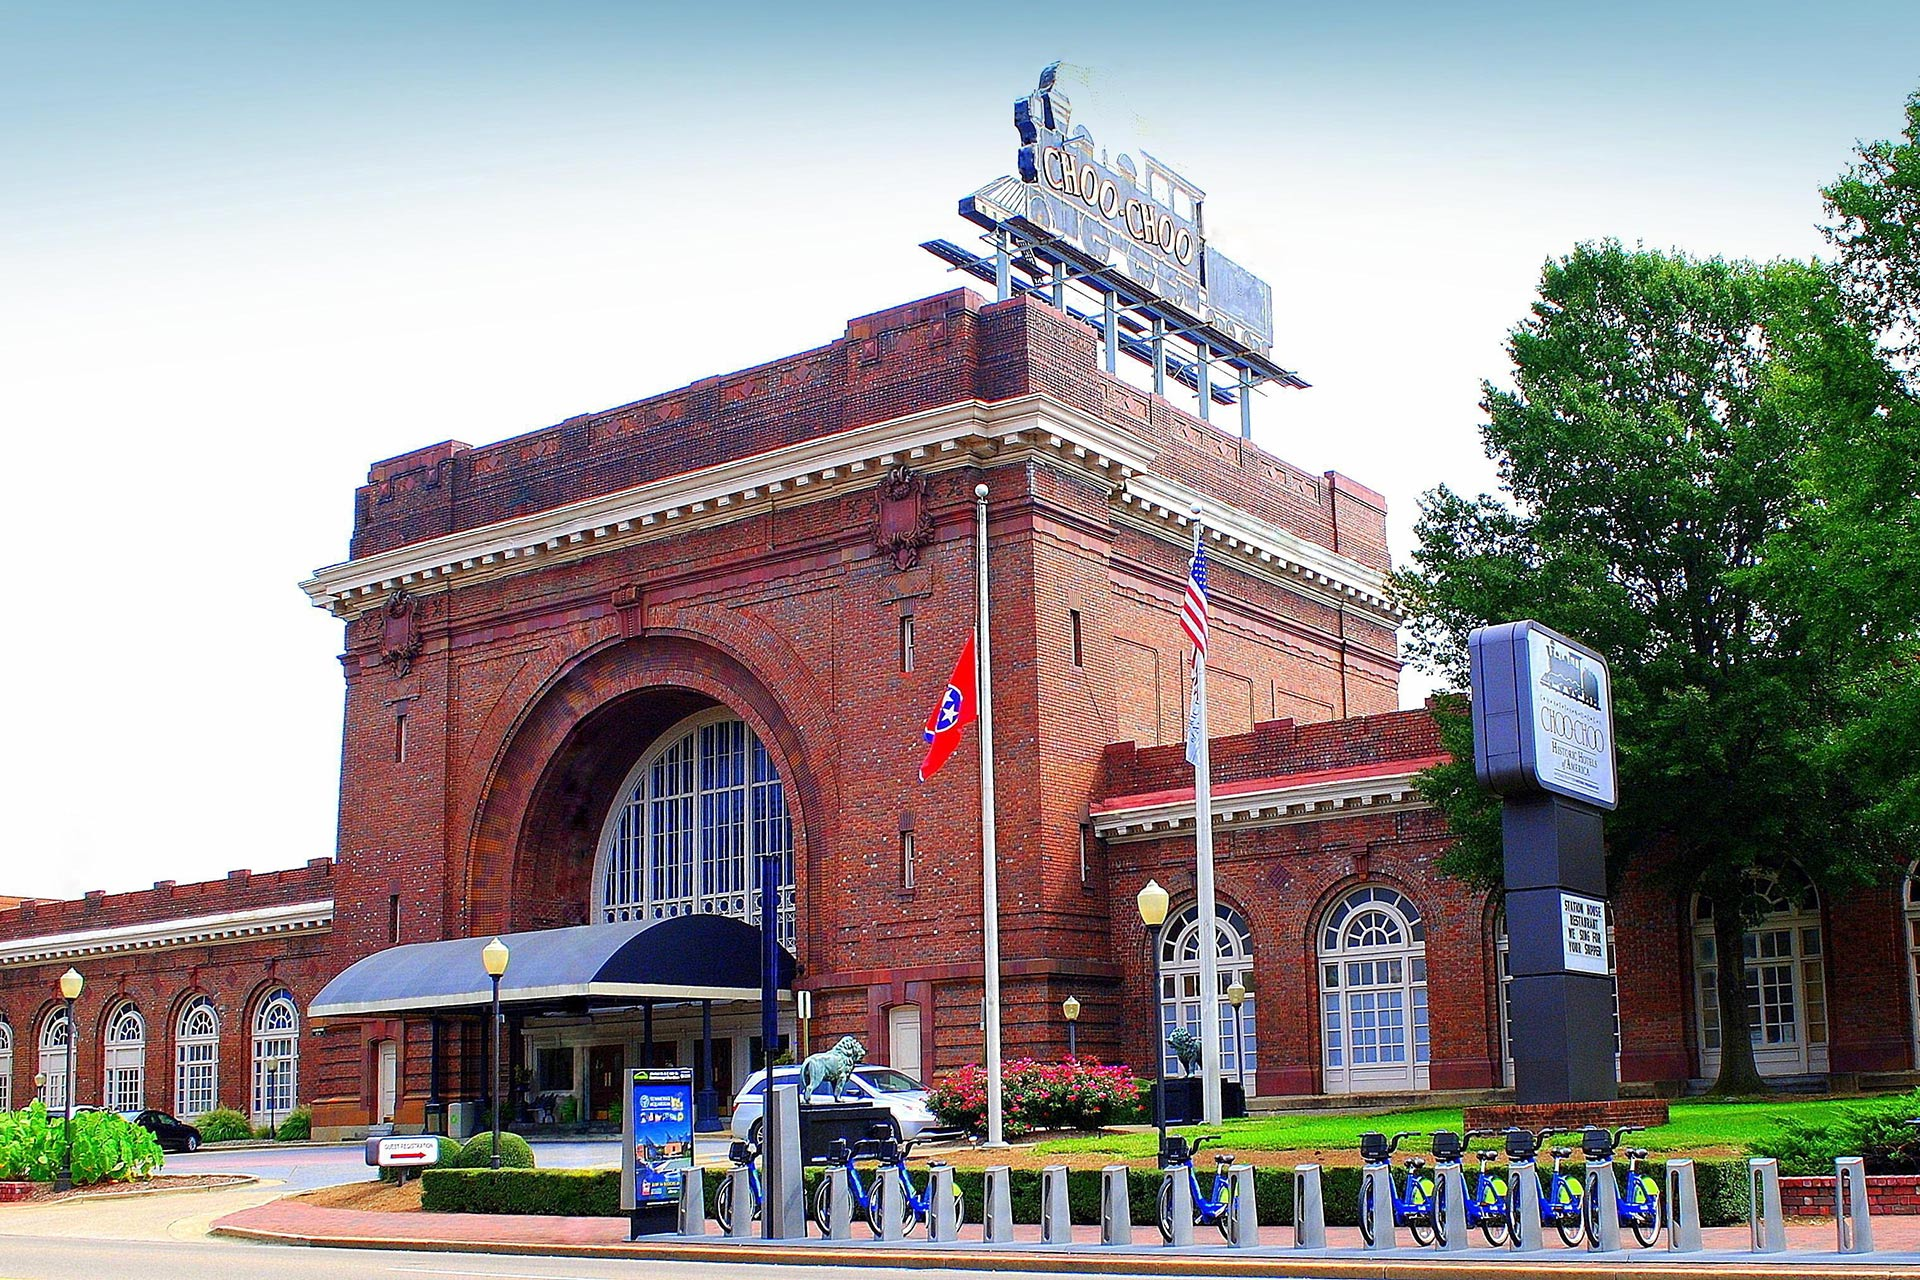 Chattanooga Choo Choo Hotel; Courtesy of Chattanooga Choo Choo Hotel